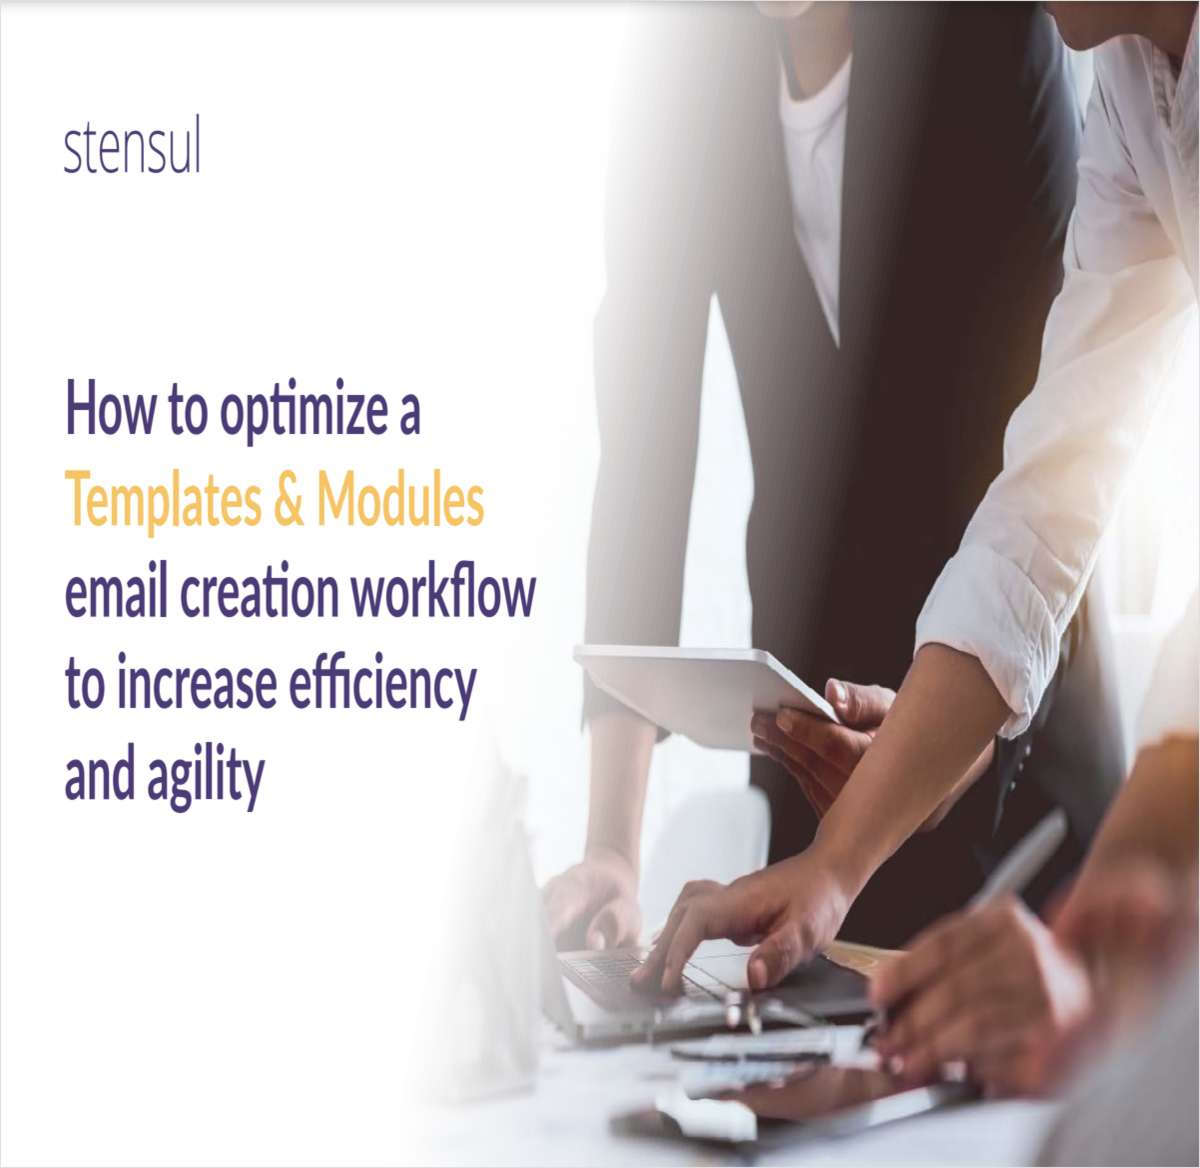 How to optimize a Templates & Modules email creation workflow to increase efficiency and agility